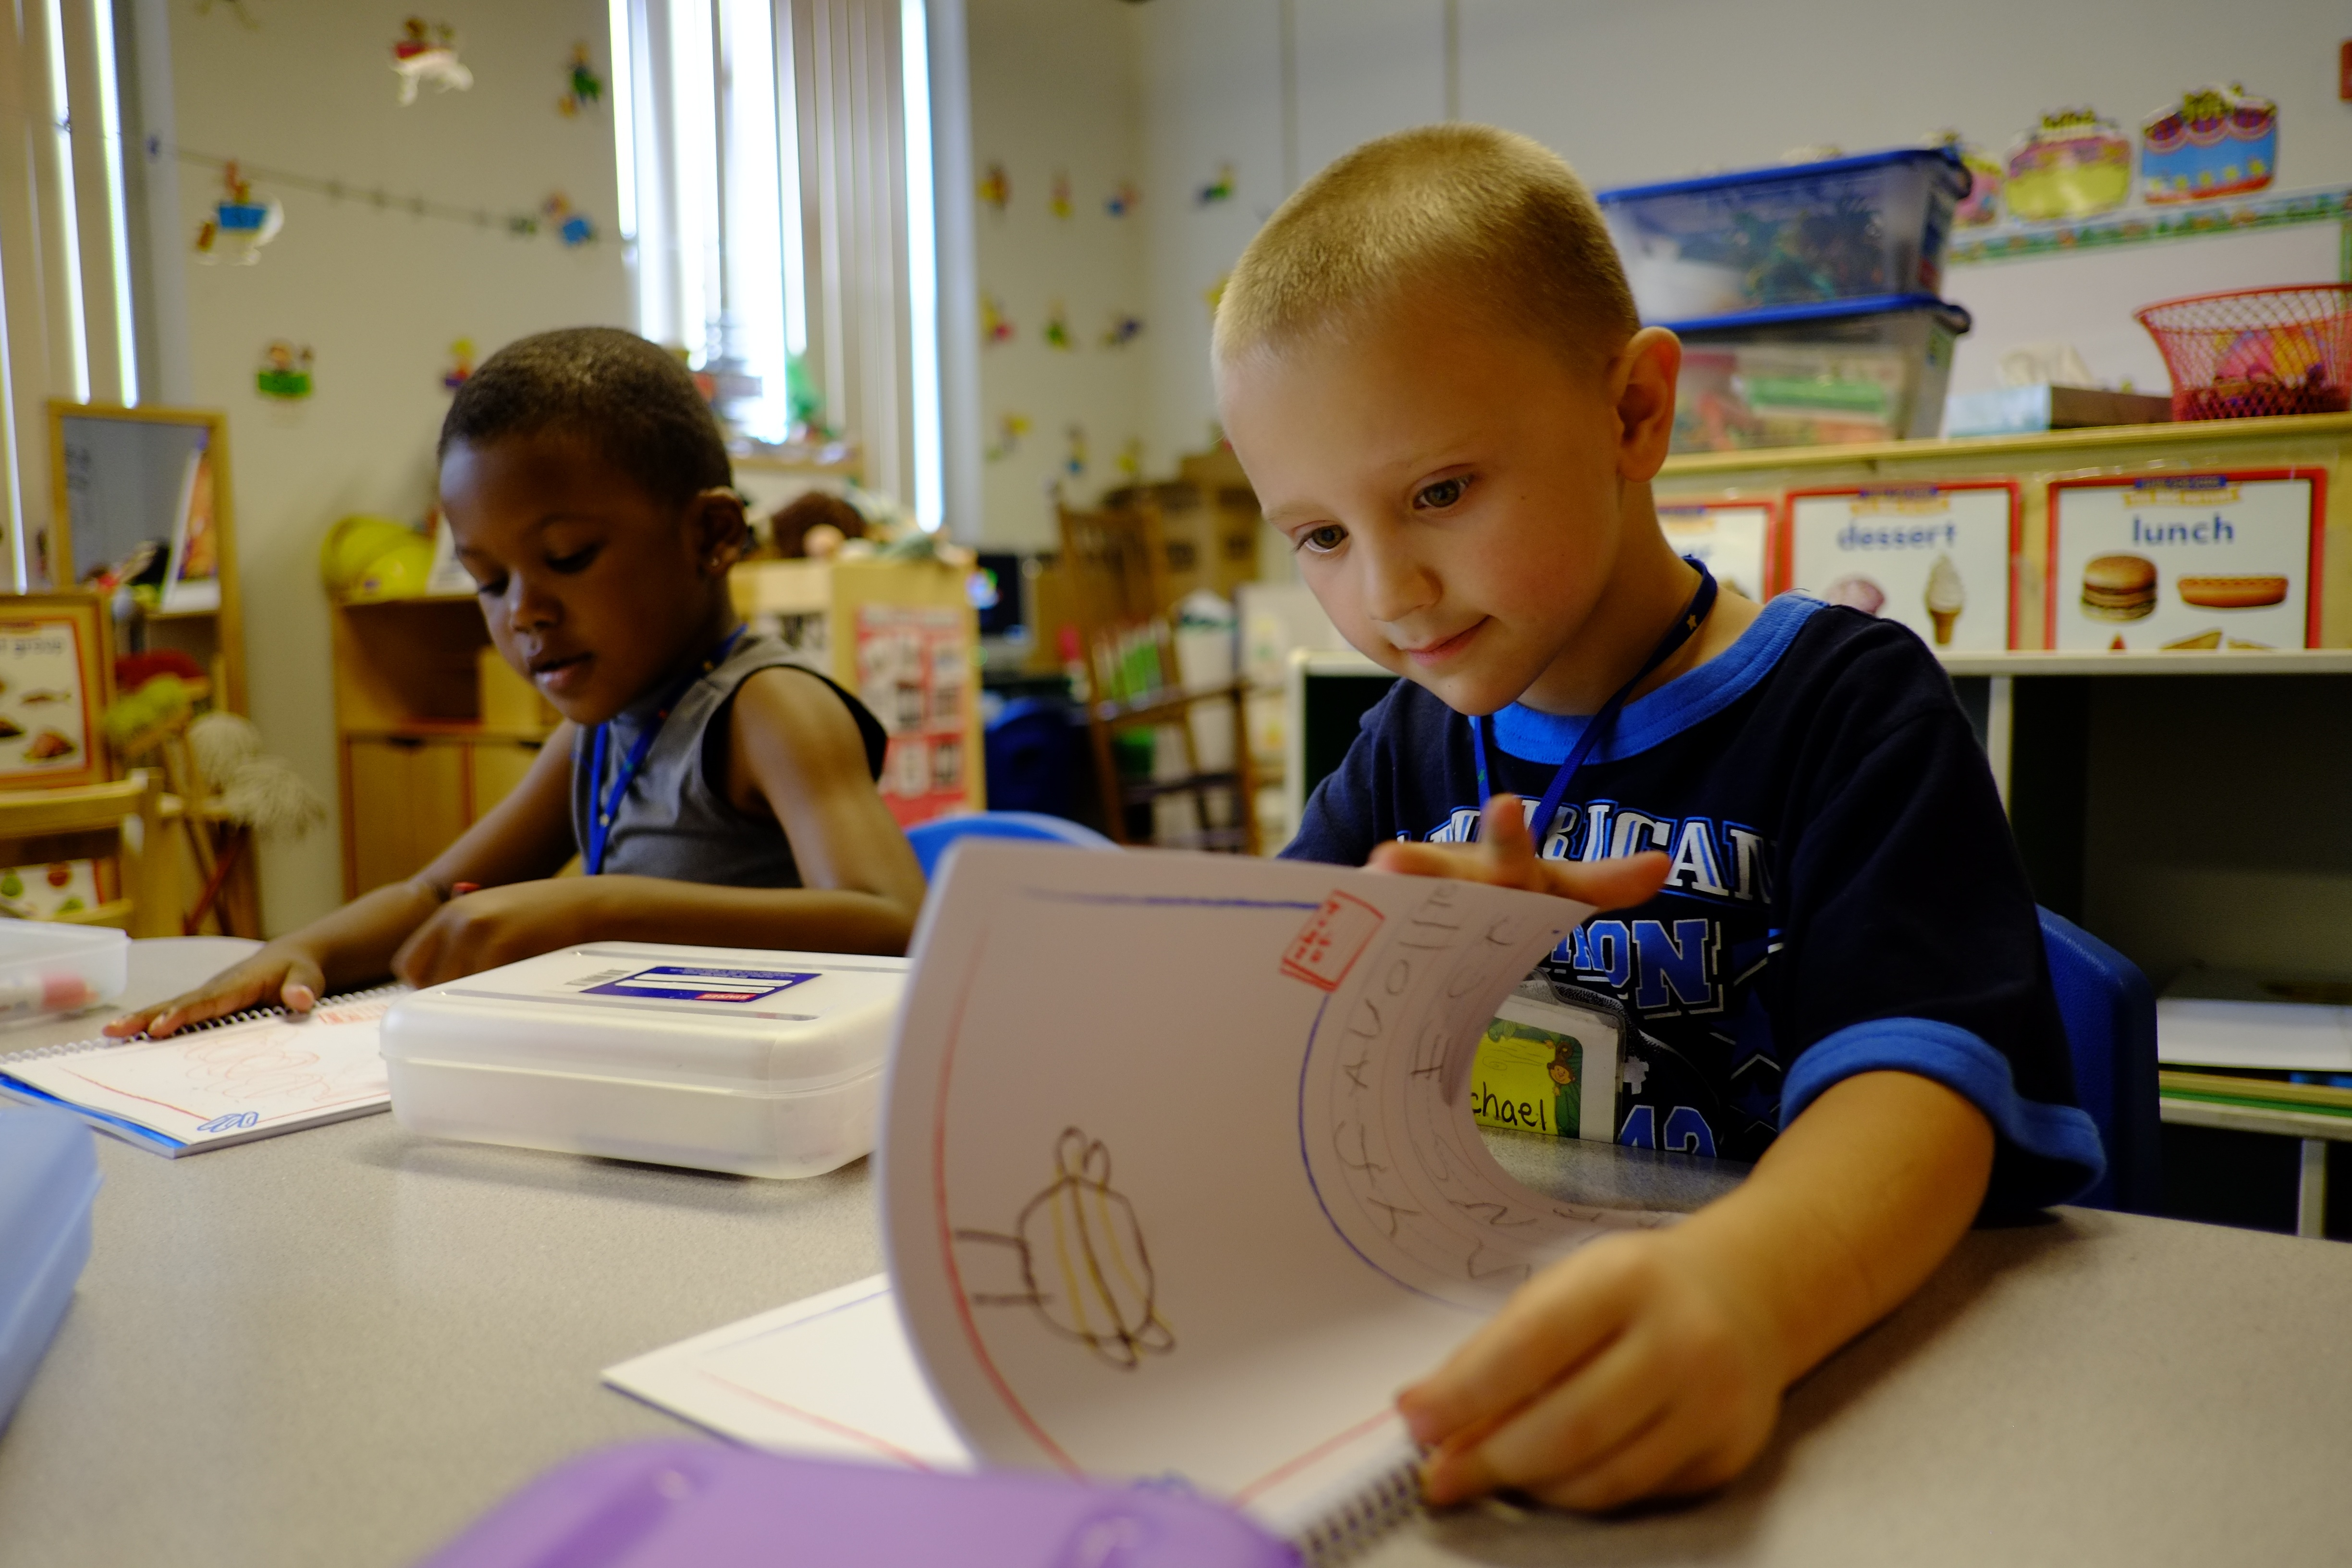 The Pittsburgh Public Schools Early Childhood Education Program A